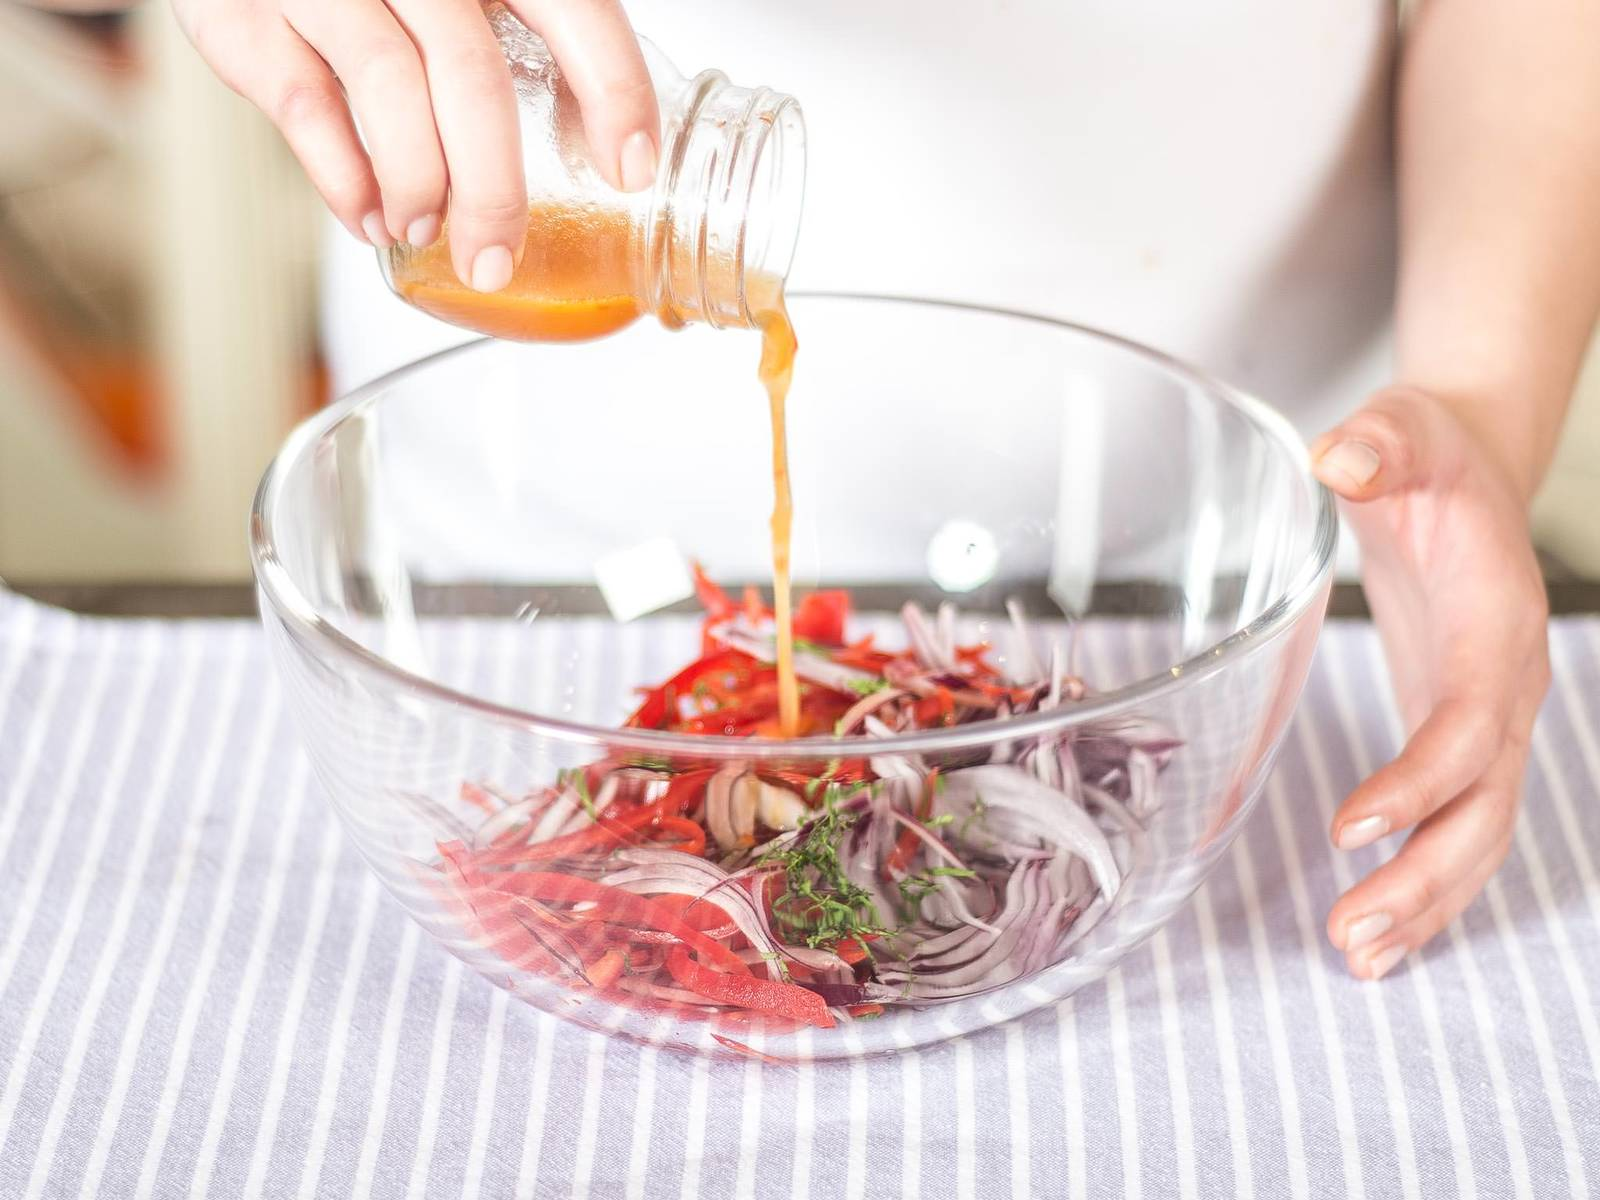 For the dressing, mix fish sauce, sweet chili sauce, lime juice, and peanut oil. Pour the dressing onto the vegetables.